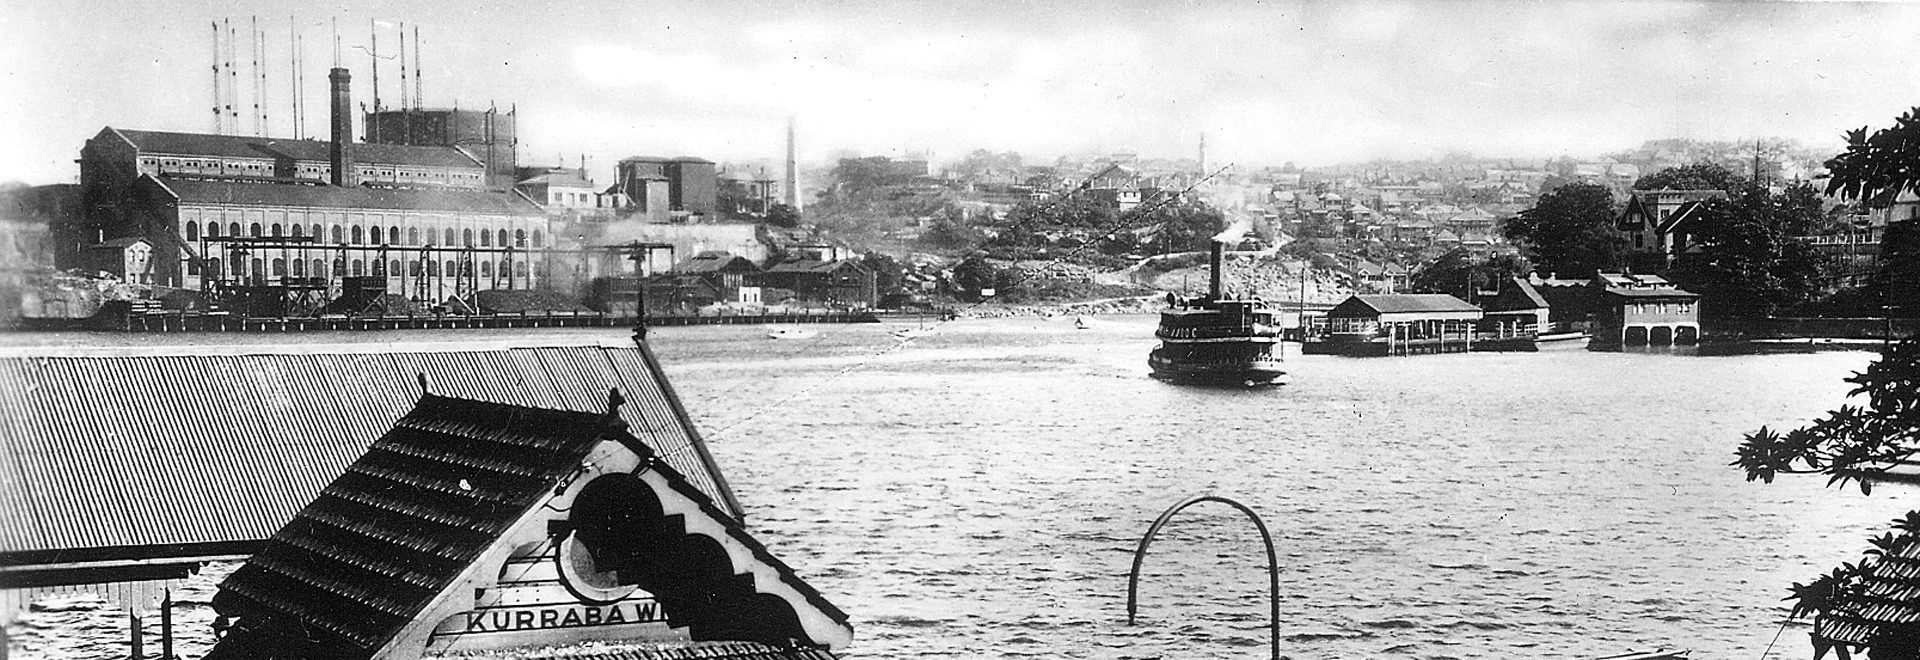 Full-width_SBP-Neutra-Bay-Kurruba-Wharf-1910-City-Sydney-Archives-Graeme-Andrews--083425_01.jpg